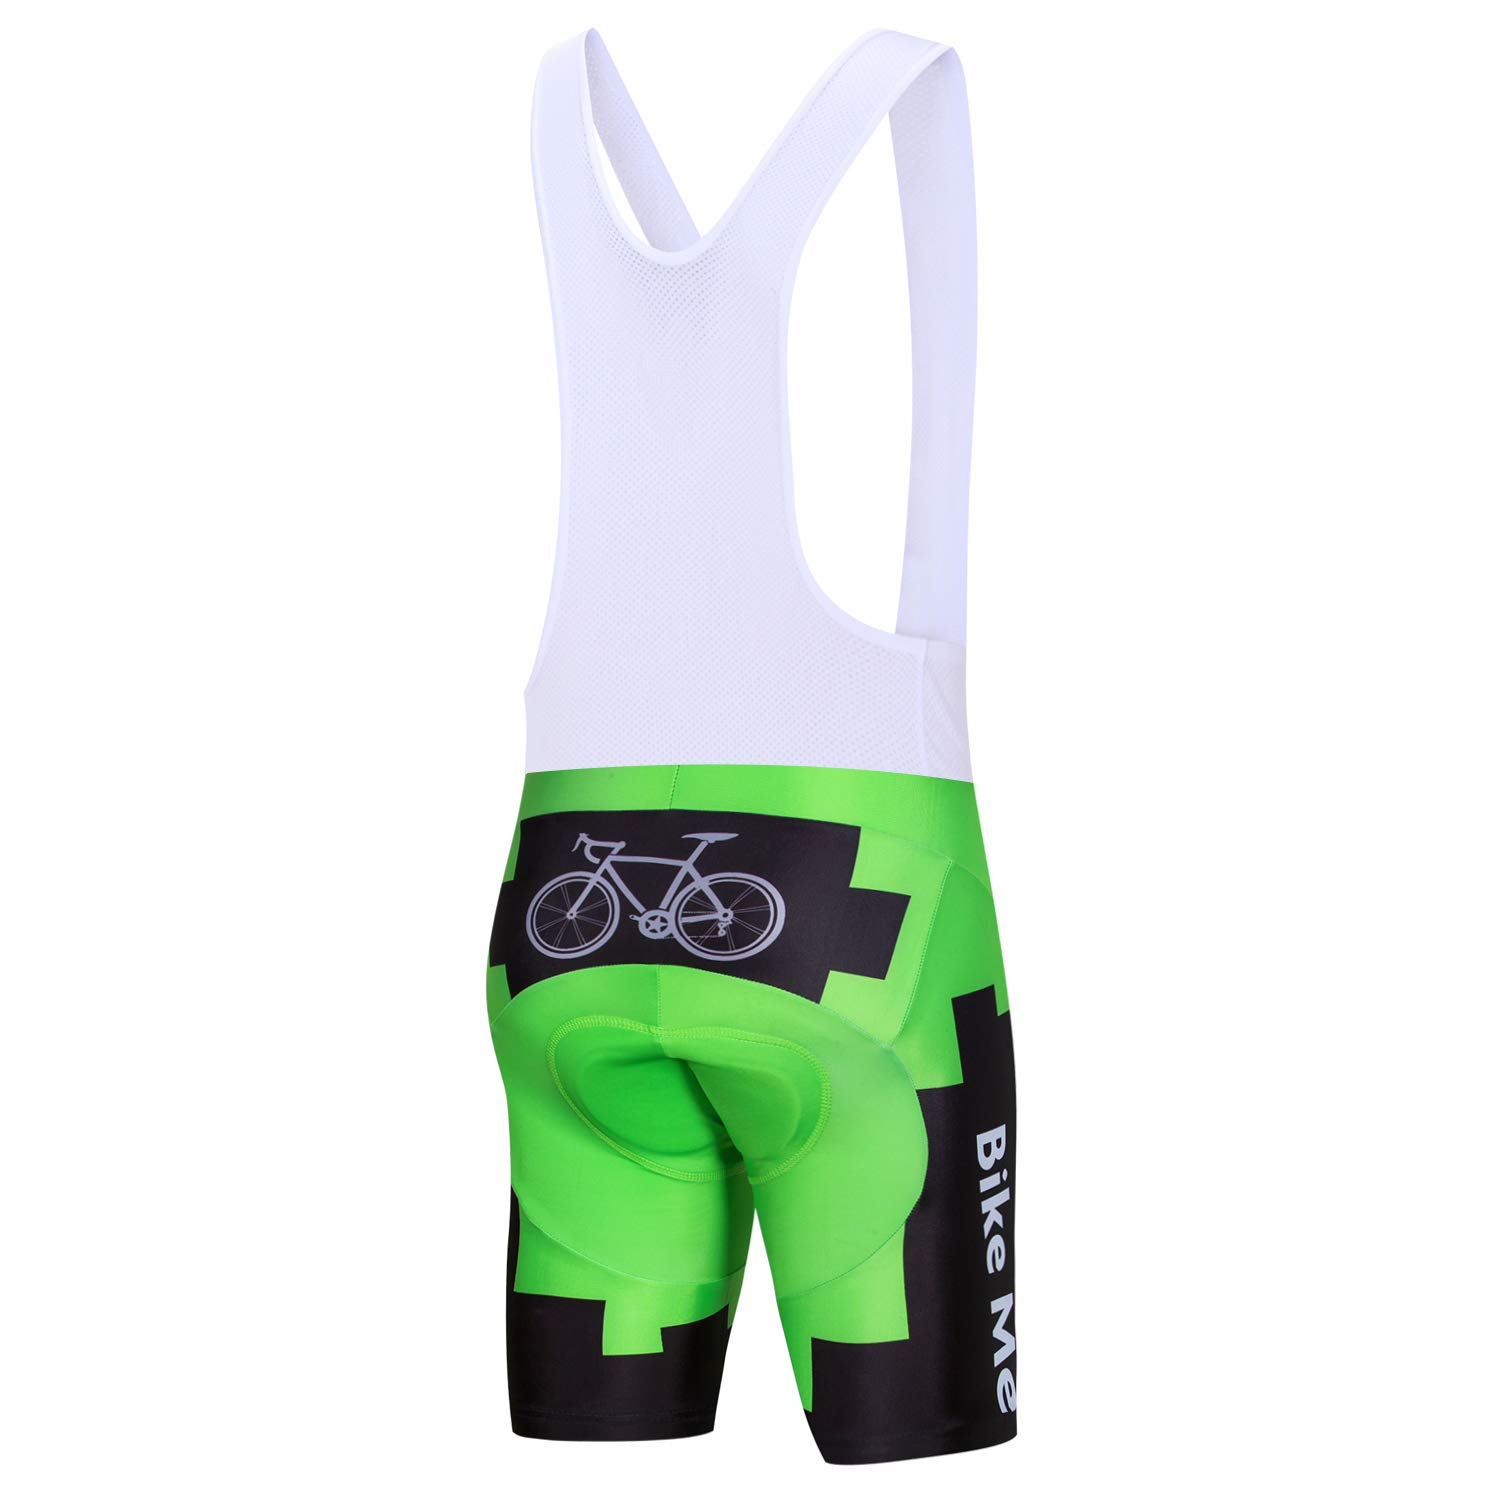 JPOJPO Cycling Shorts Men, Men's MTB Bike Shorts with Paded Biking Tights by JPOJPO